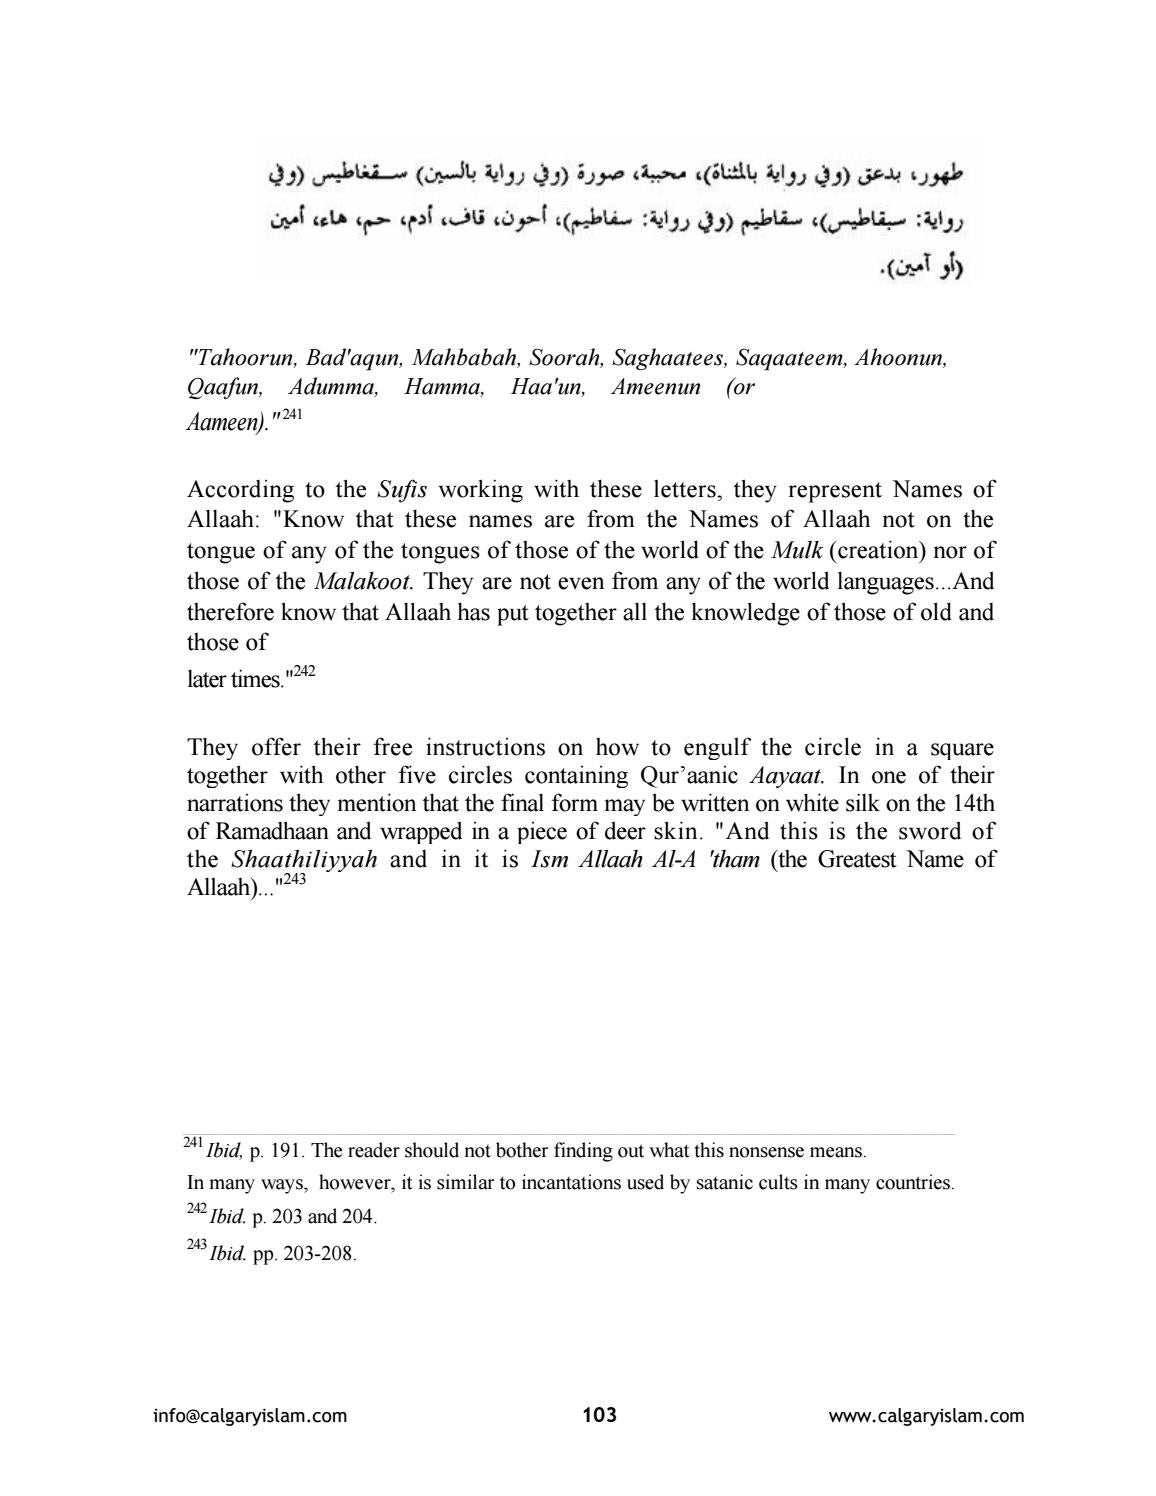 A chapter on the dispraise of al hawaa